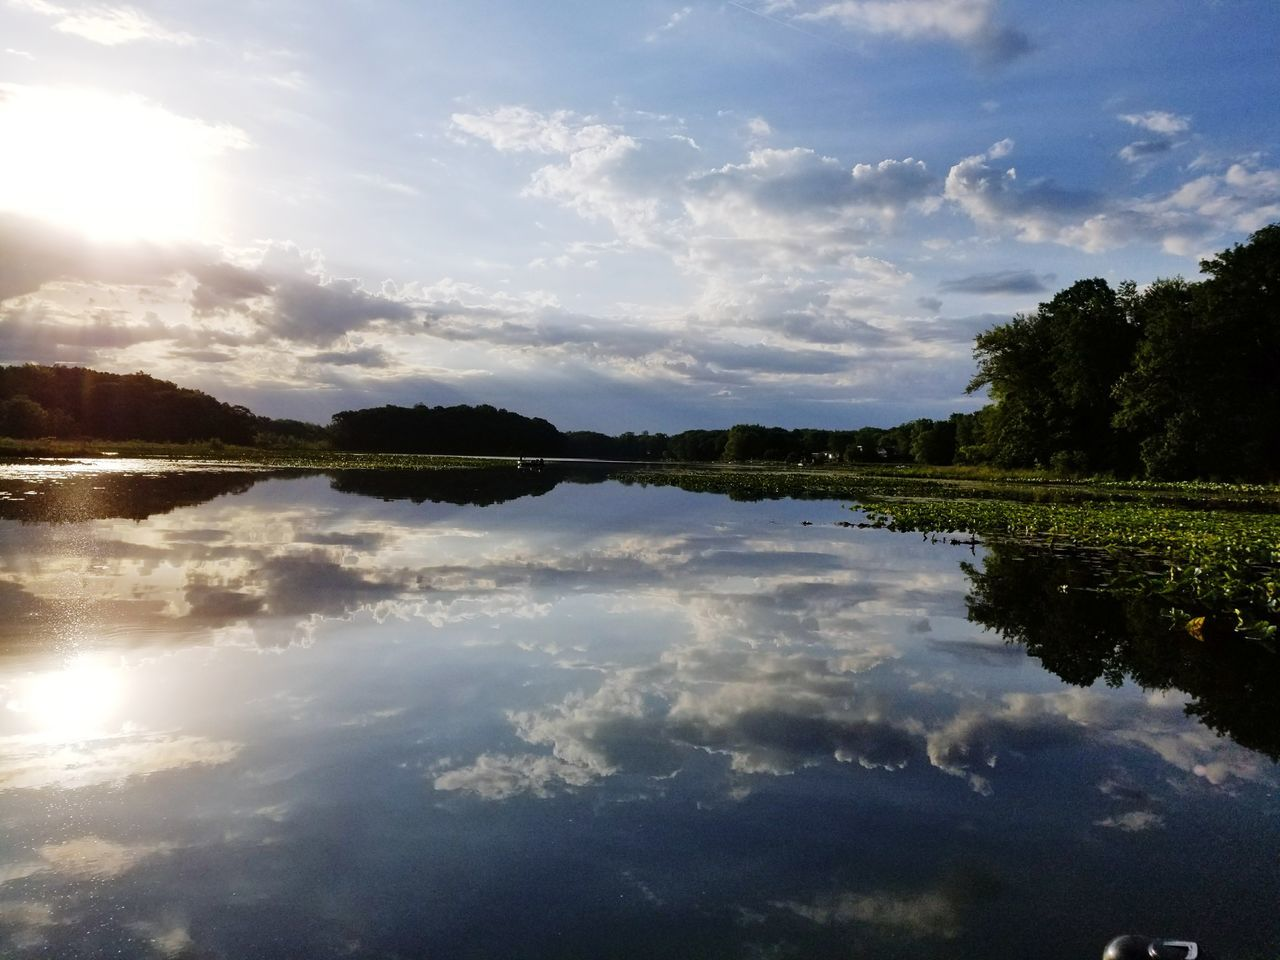 reflection, sky, water, cloud - sky, nature, beauty in nature, tranquil scene, tranquility, scenics, outdoors, tree, no people, waterfront, lake, sunlight, day